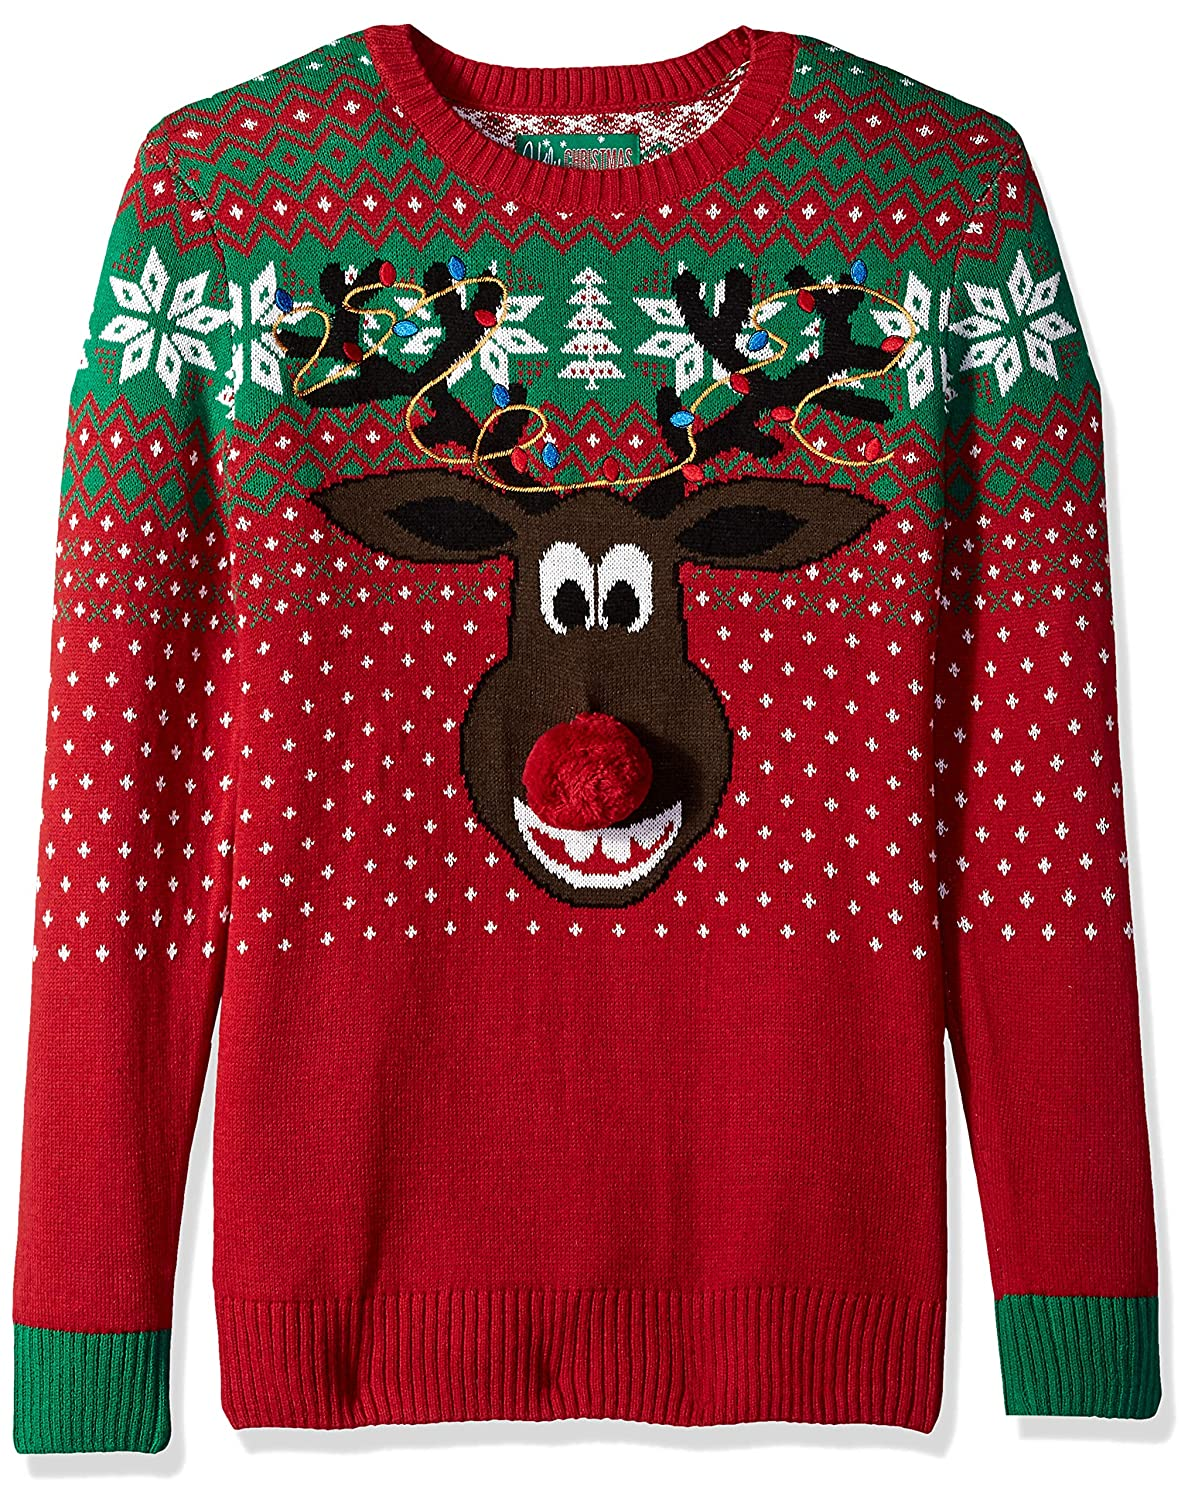 Ugly Christmas Sweater Company Men's Ugly Christmas Sweater-Poopermints 2 SYP8-1801BAMZ